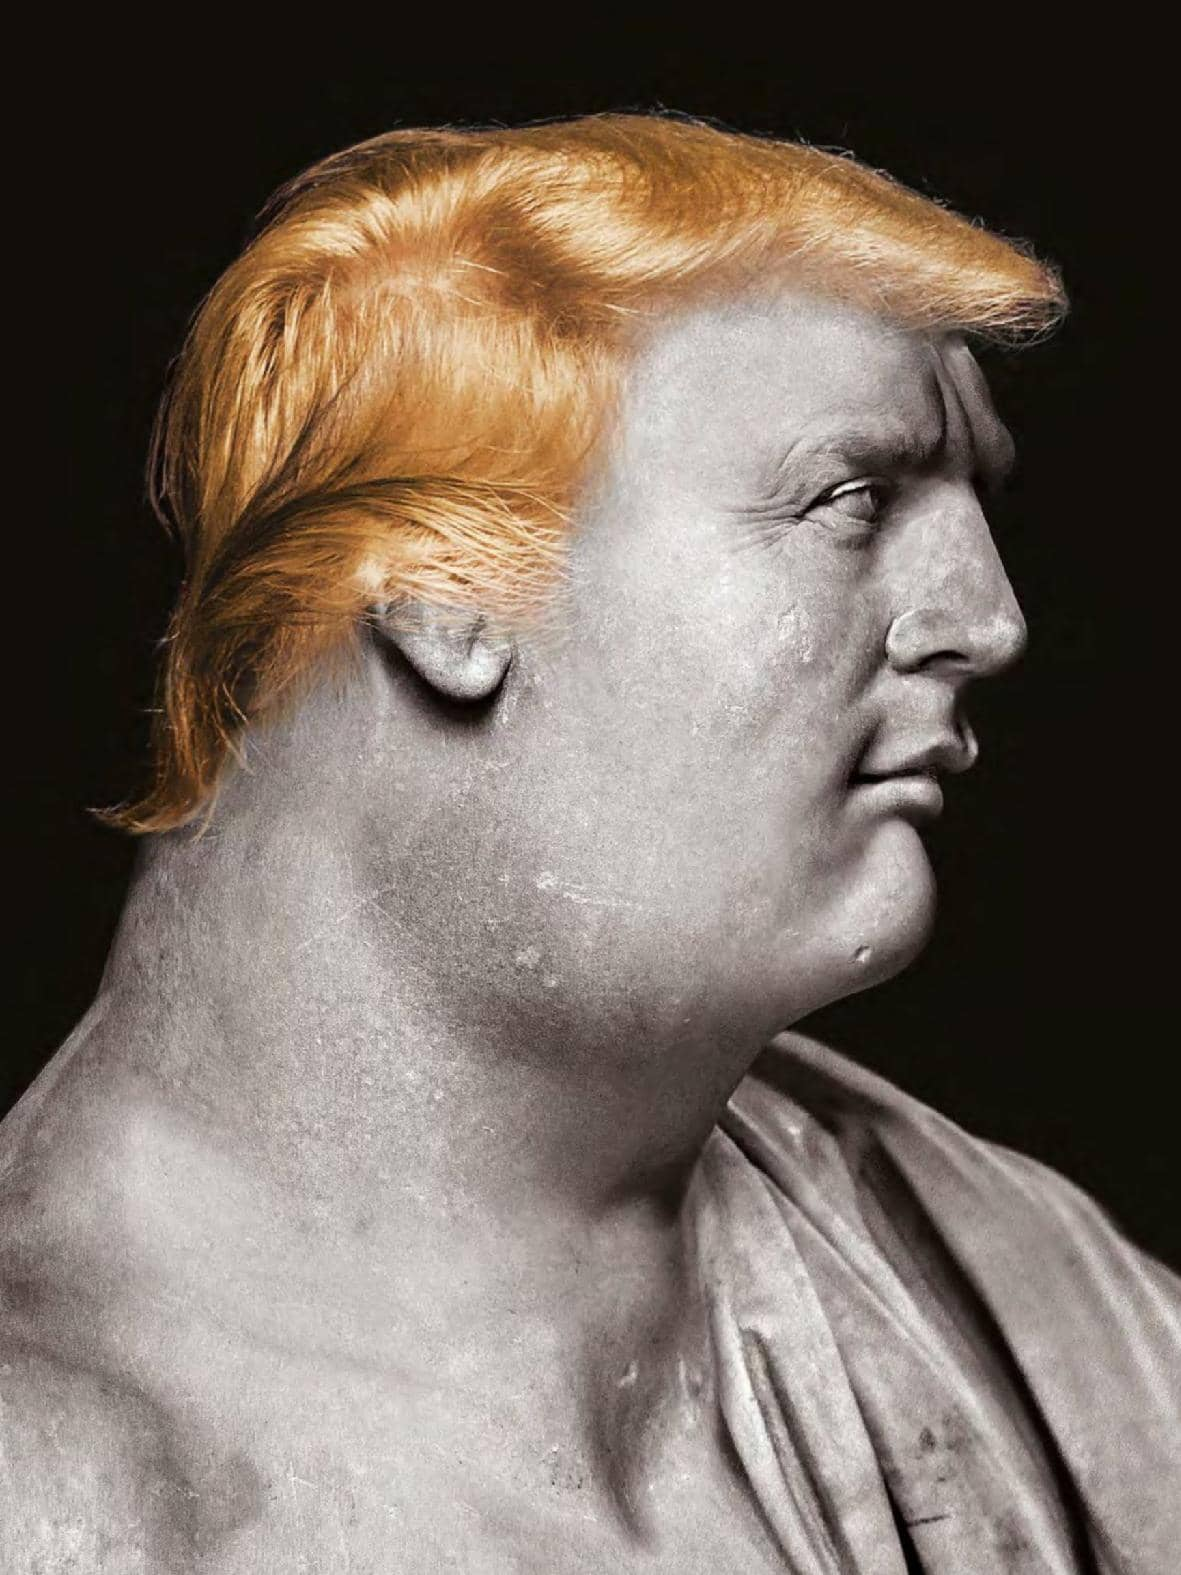 Our Caesar - Can The Country Come Back From Trump?